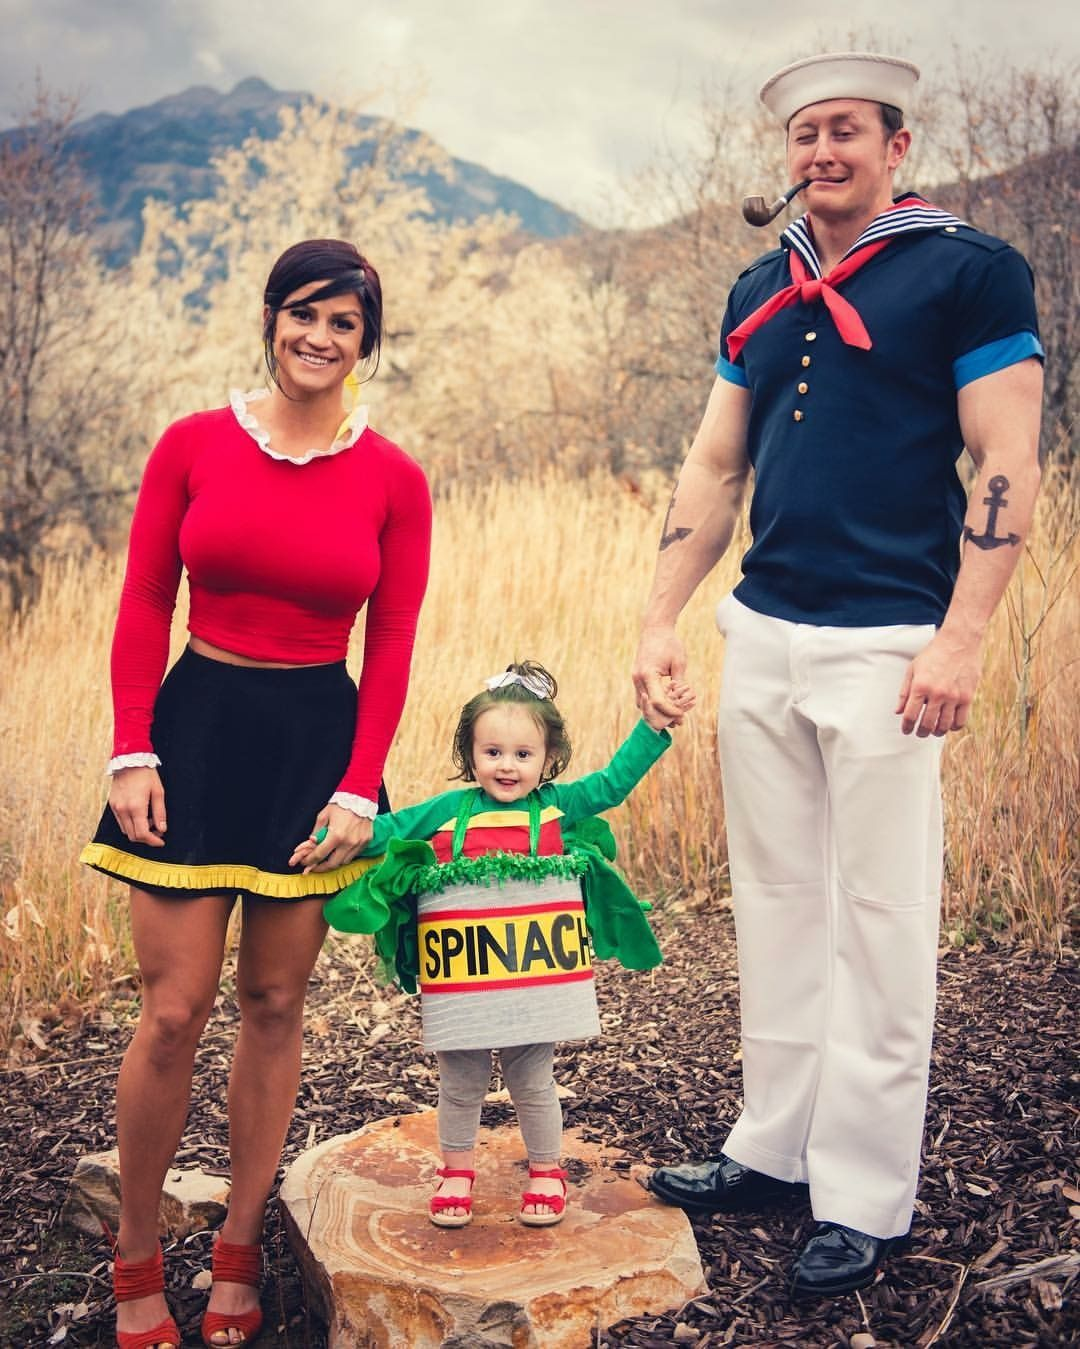 popeye olive spinach family halloween costume popeyeandolive popeyeandolive spinach halloween2017 halloweencostume familyhalloweencostume fashion